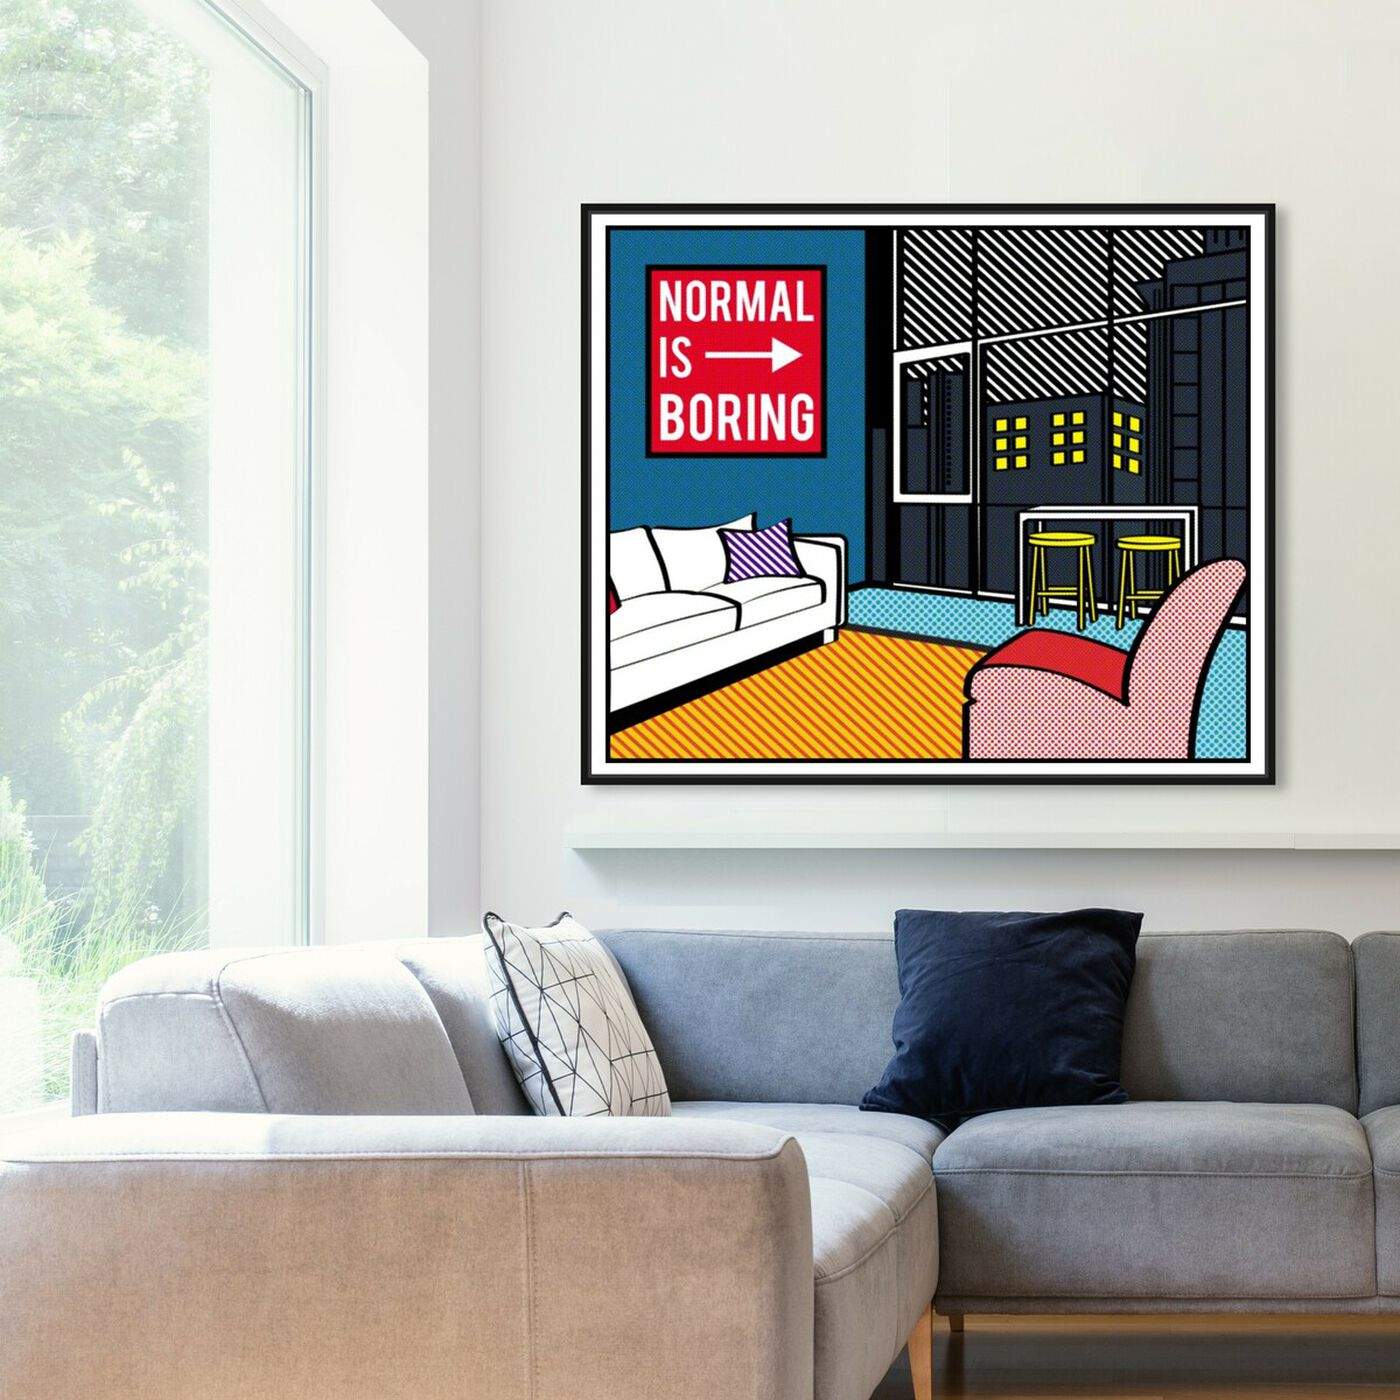 Hanging view of Living In The City featuring advertising and comics art.